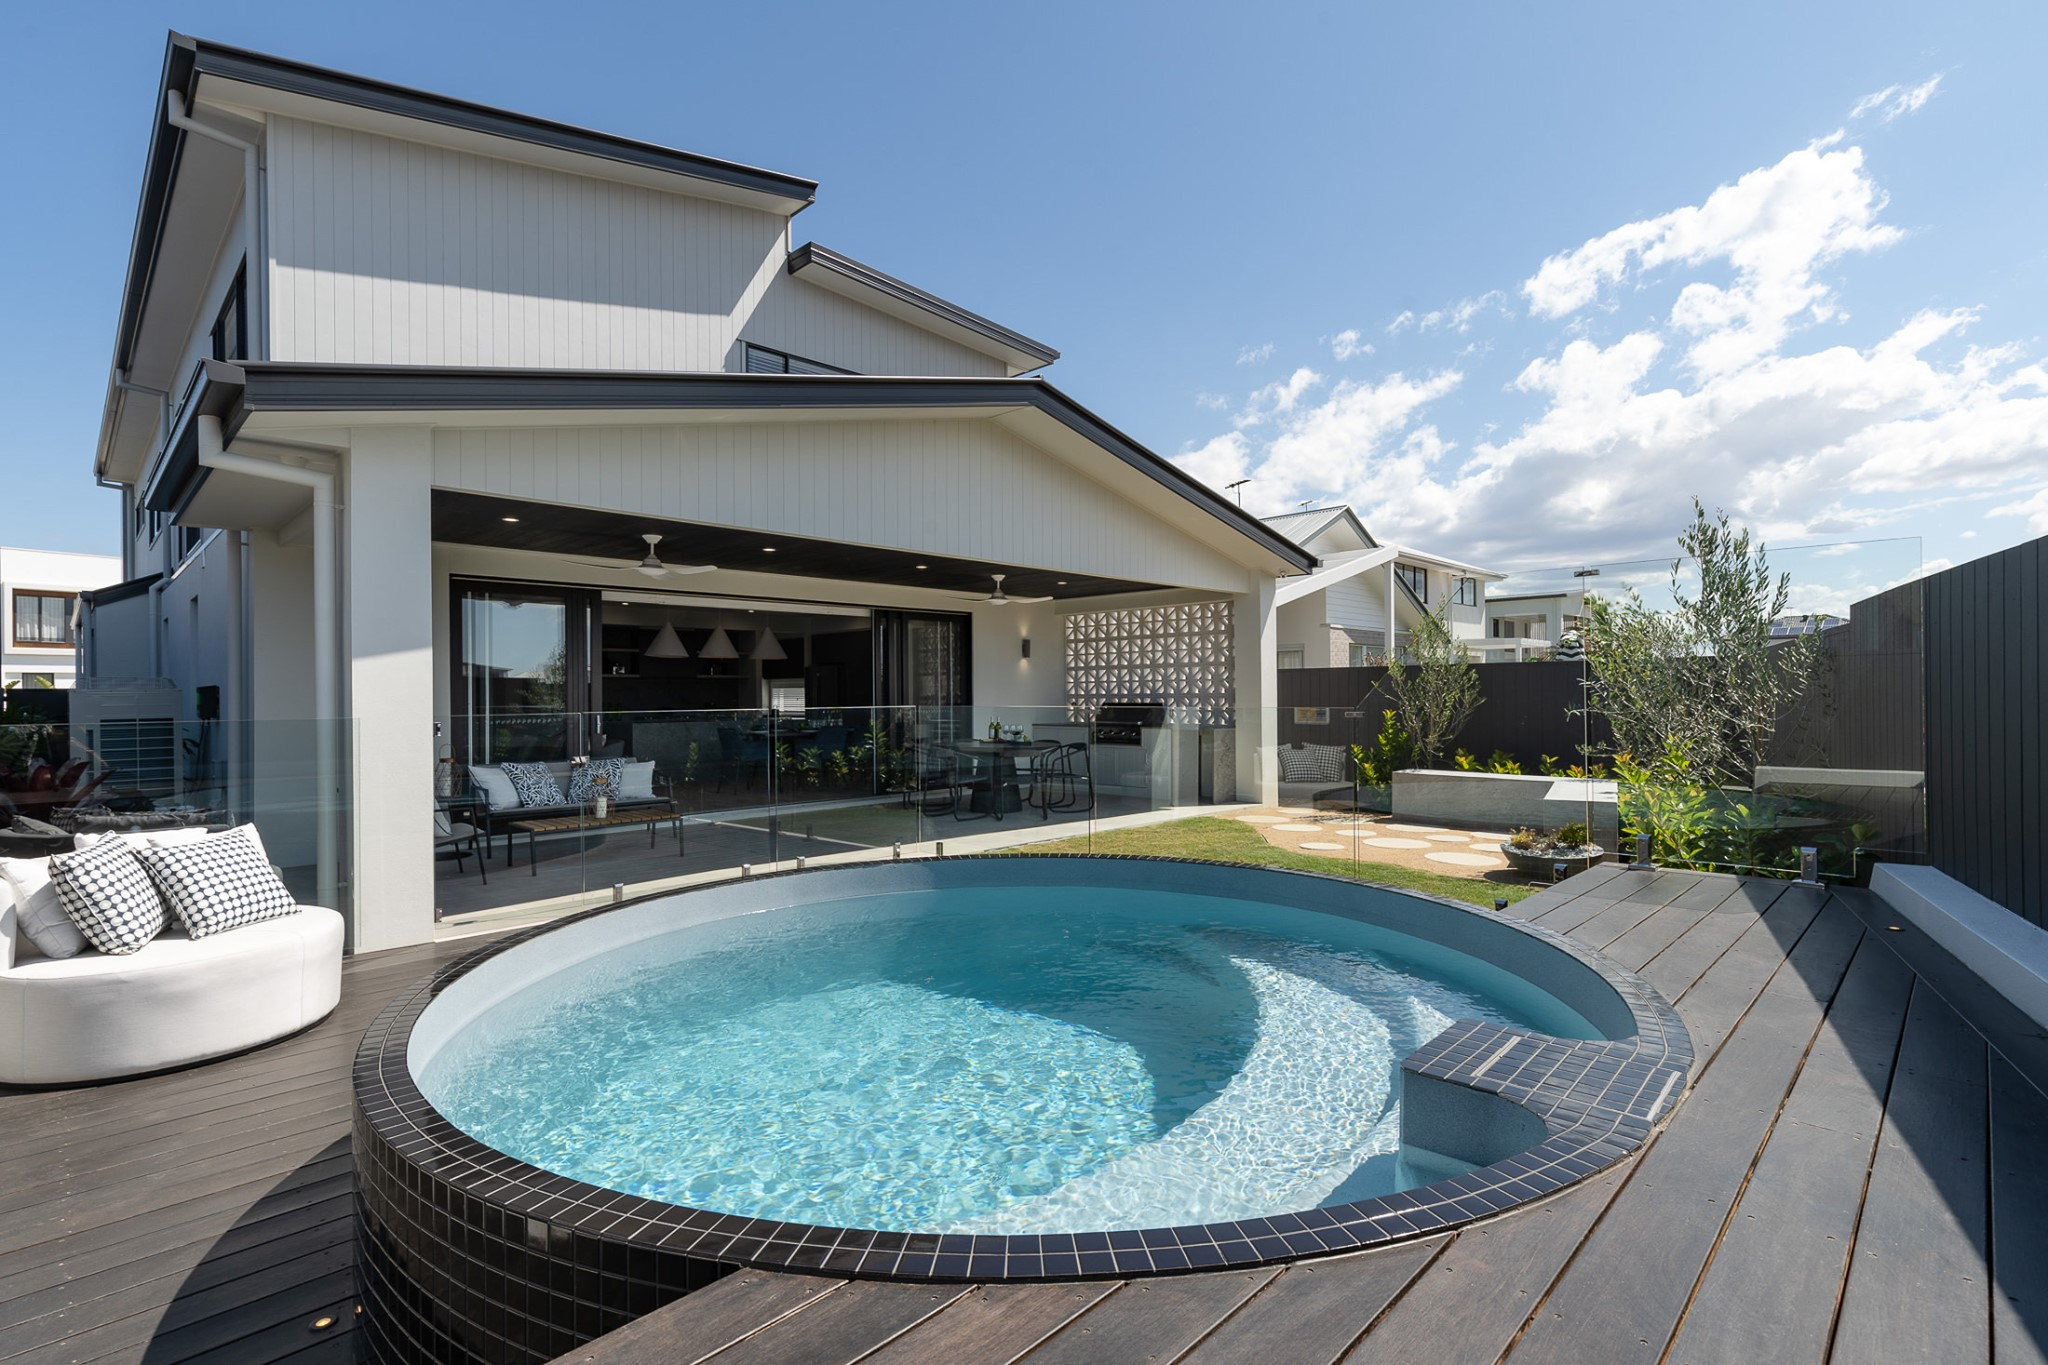 Why you should consider getting an above-ground pool